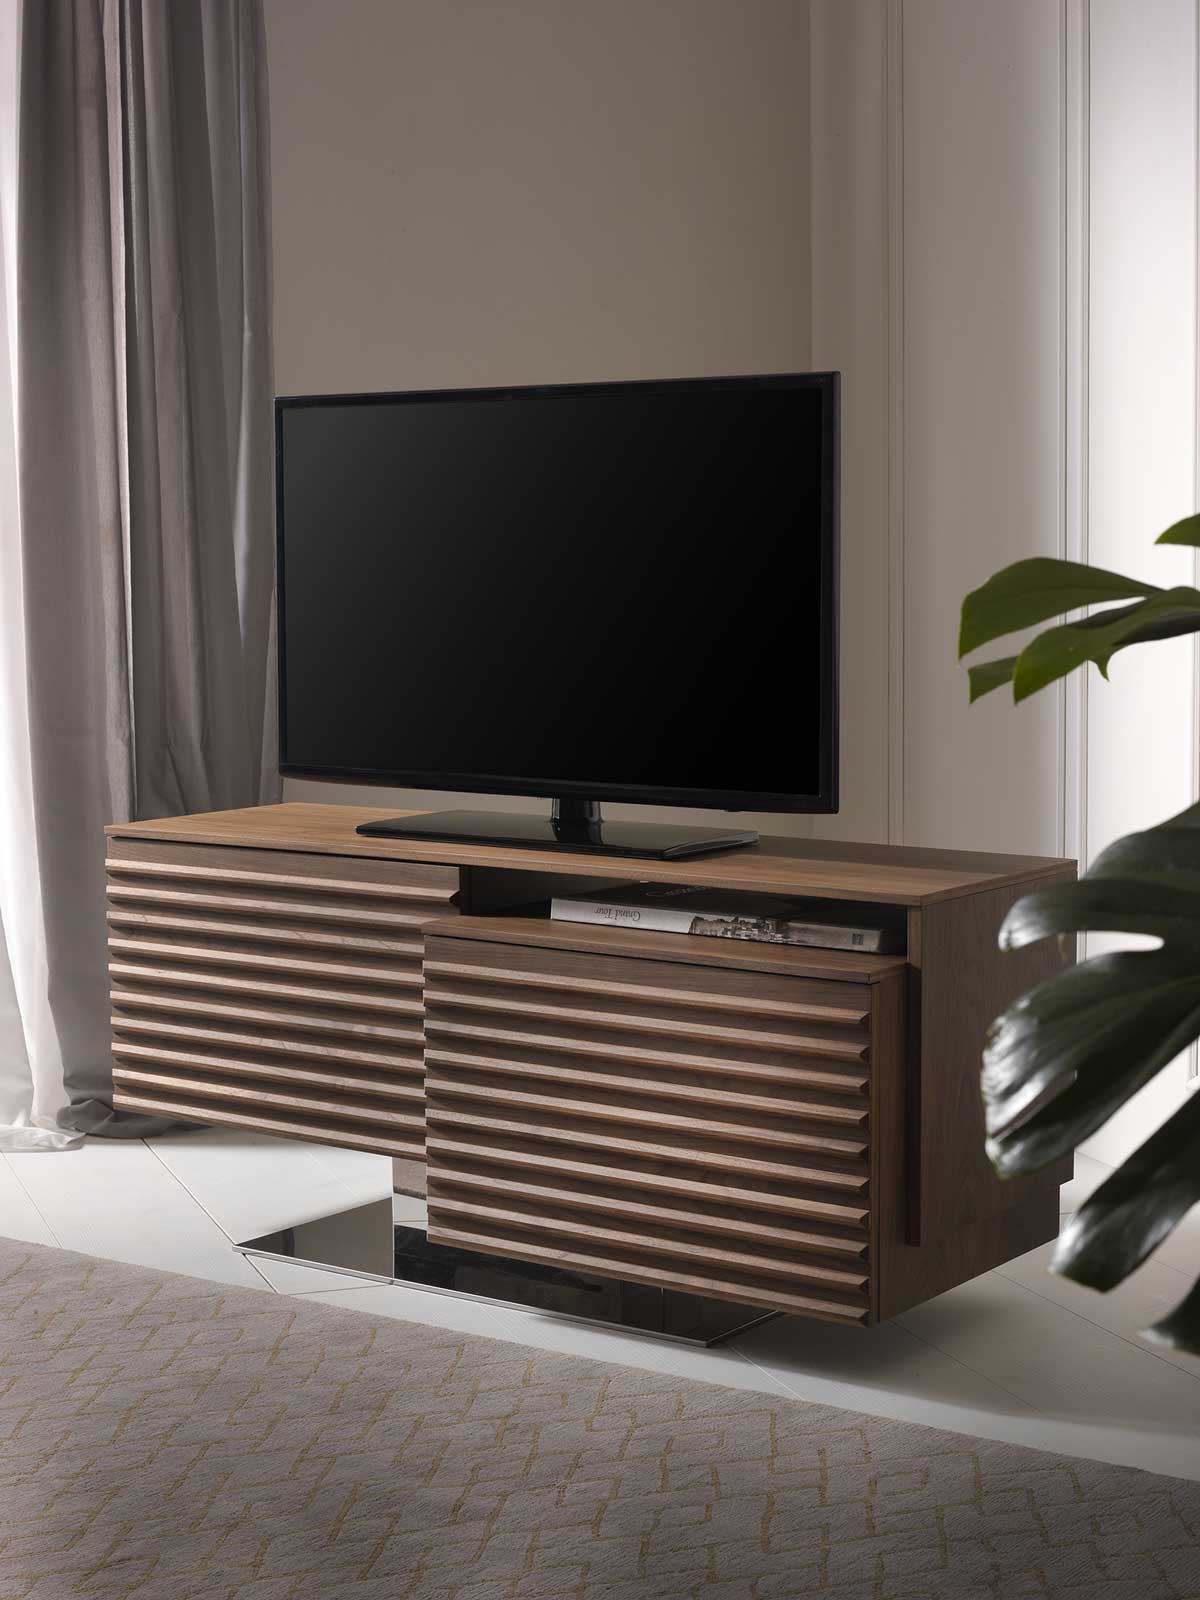 FABIUS Walnut TV cabinet